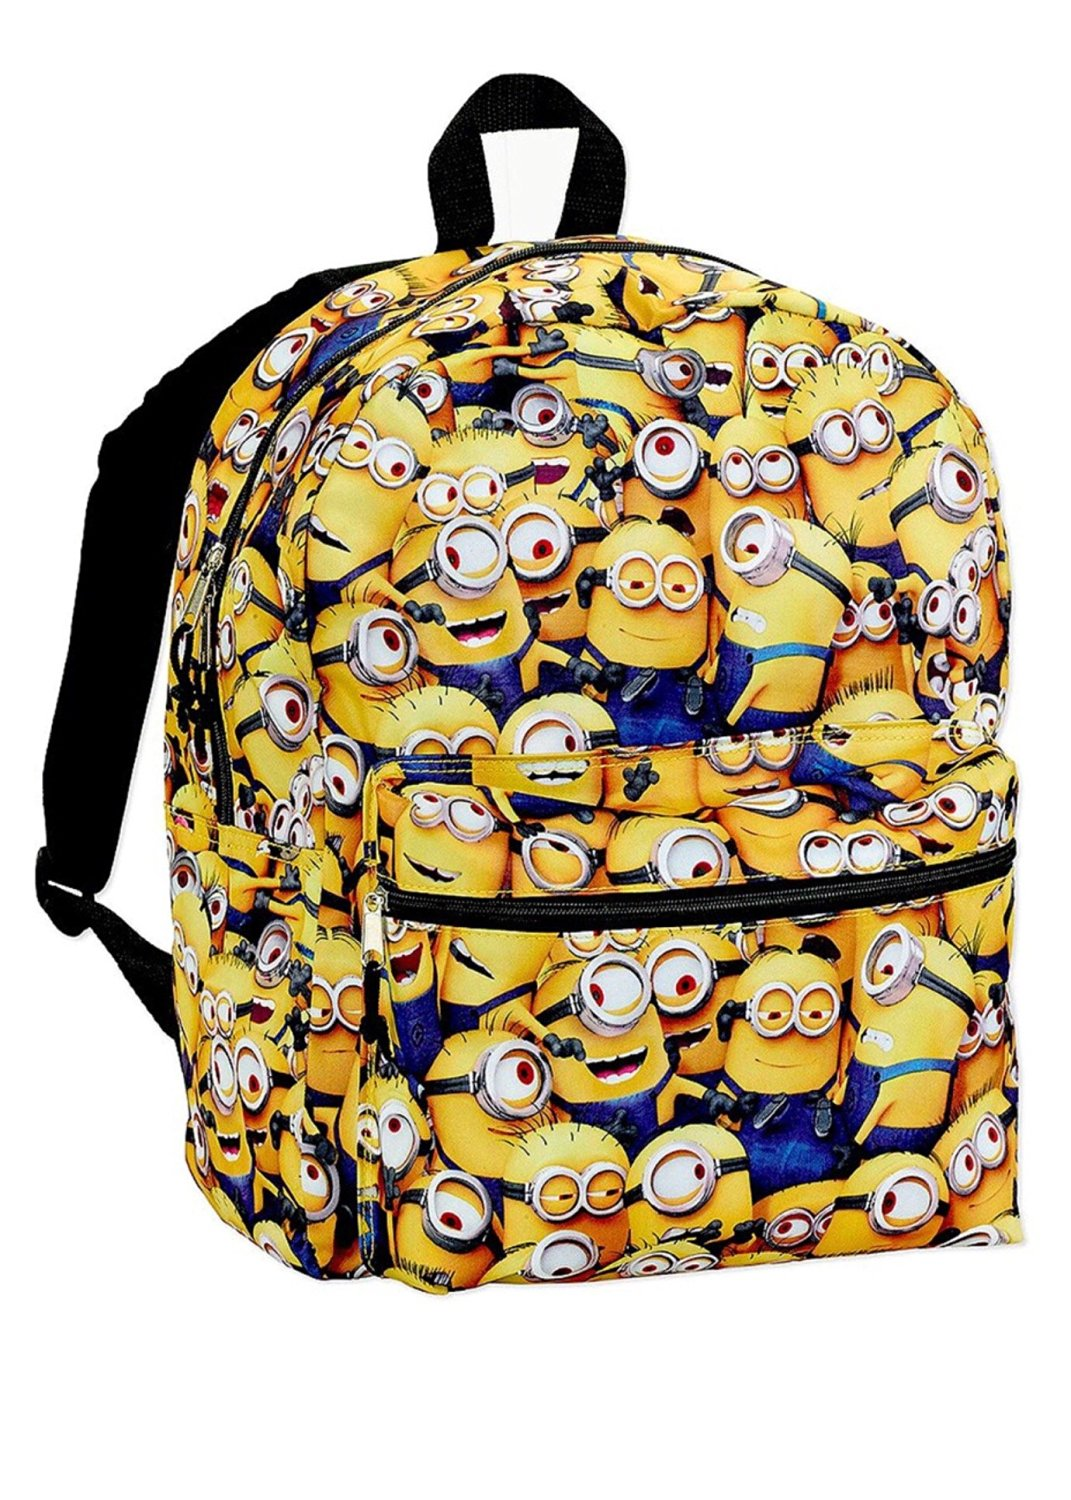 Despicable Me All Over Print Minions Characters Standard Size School Backpack - Kids